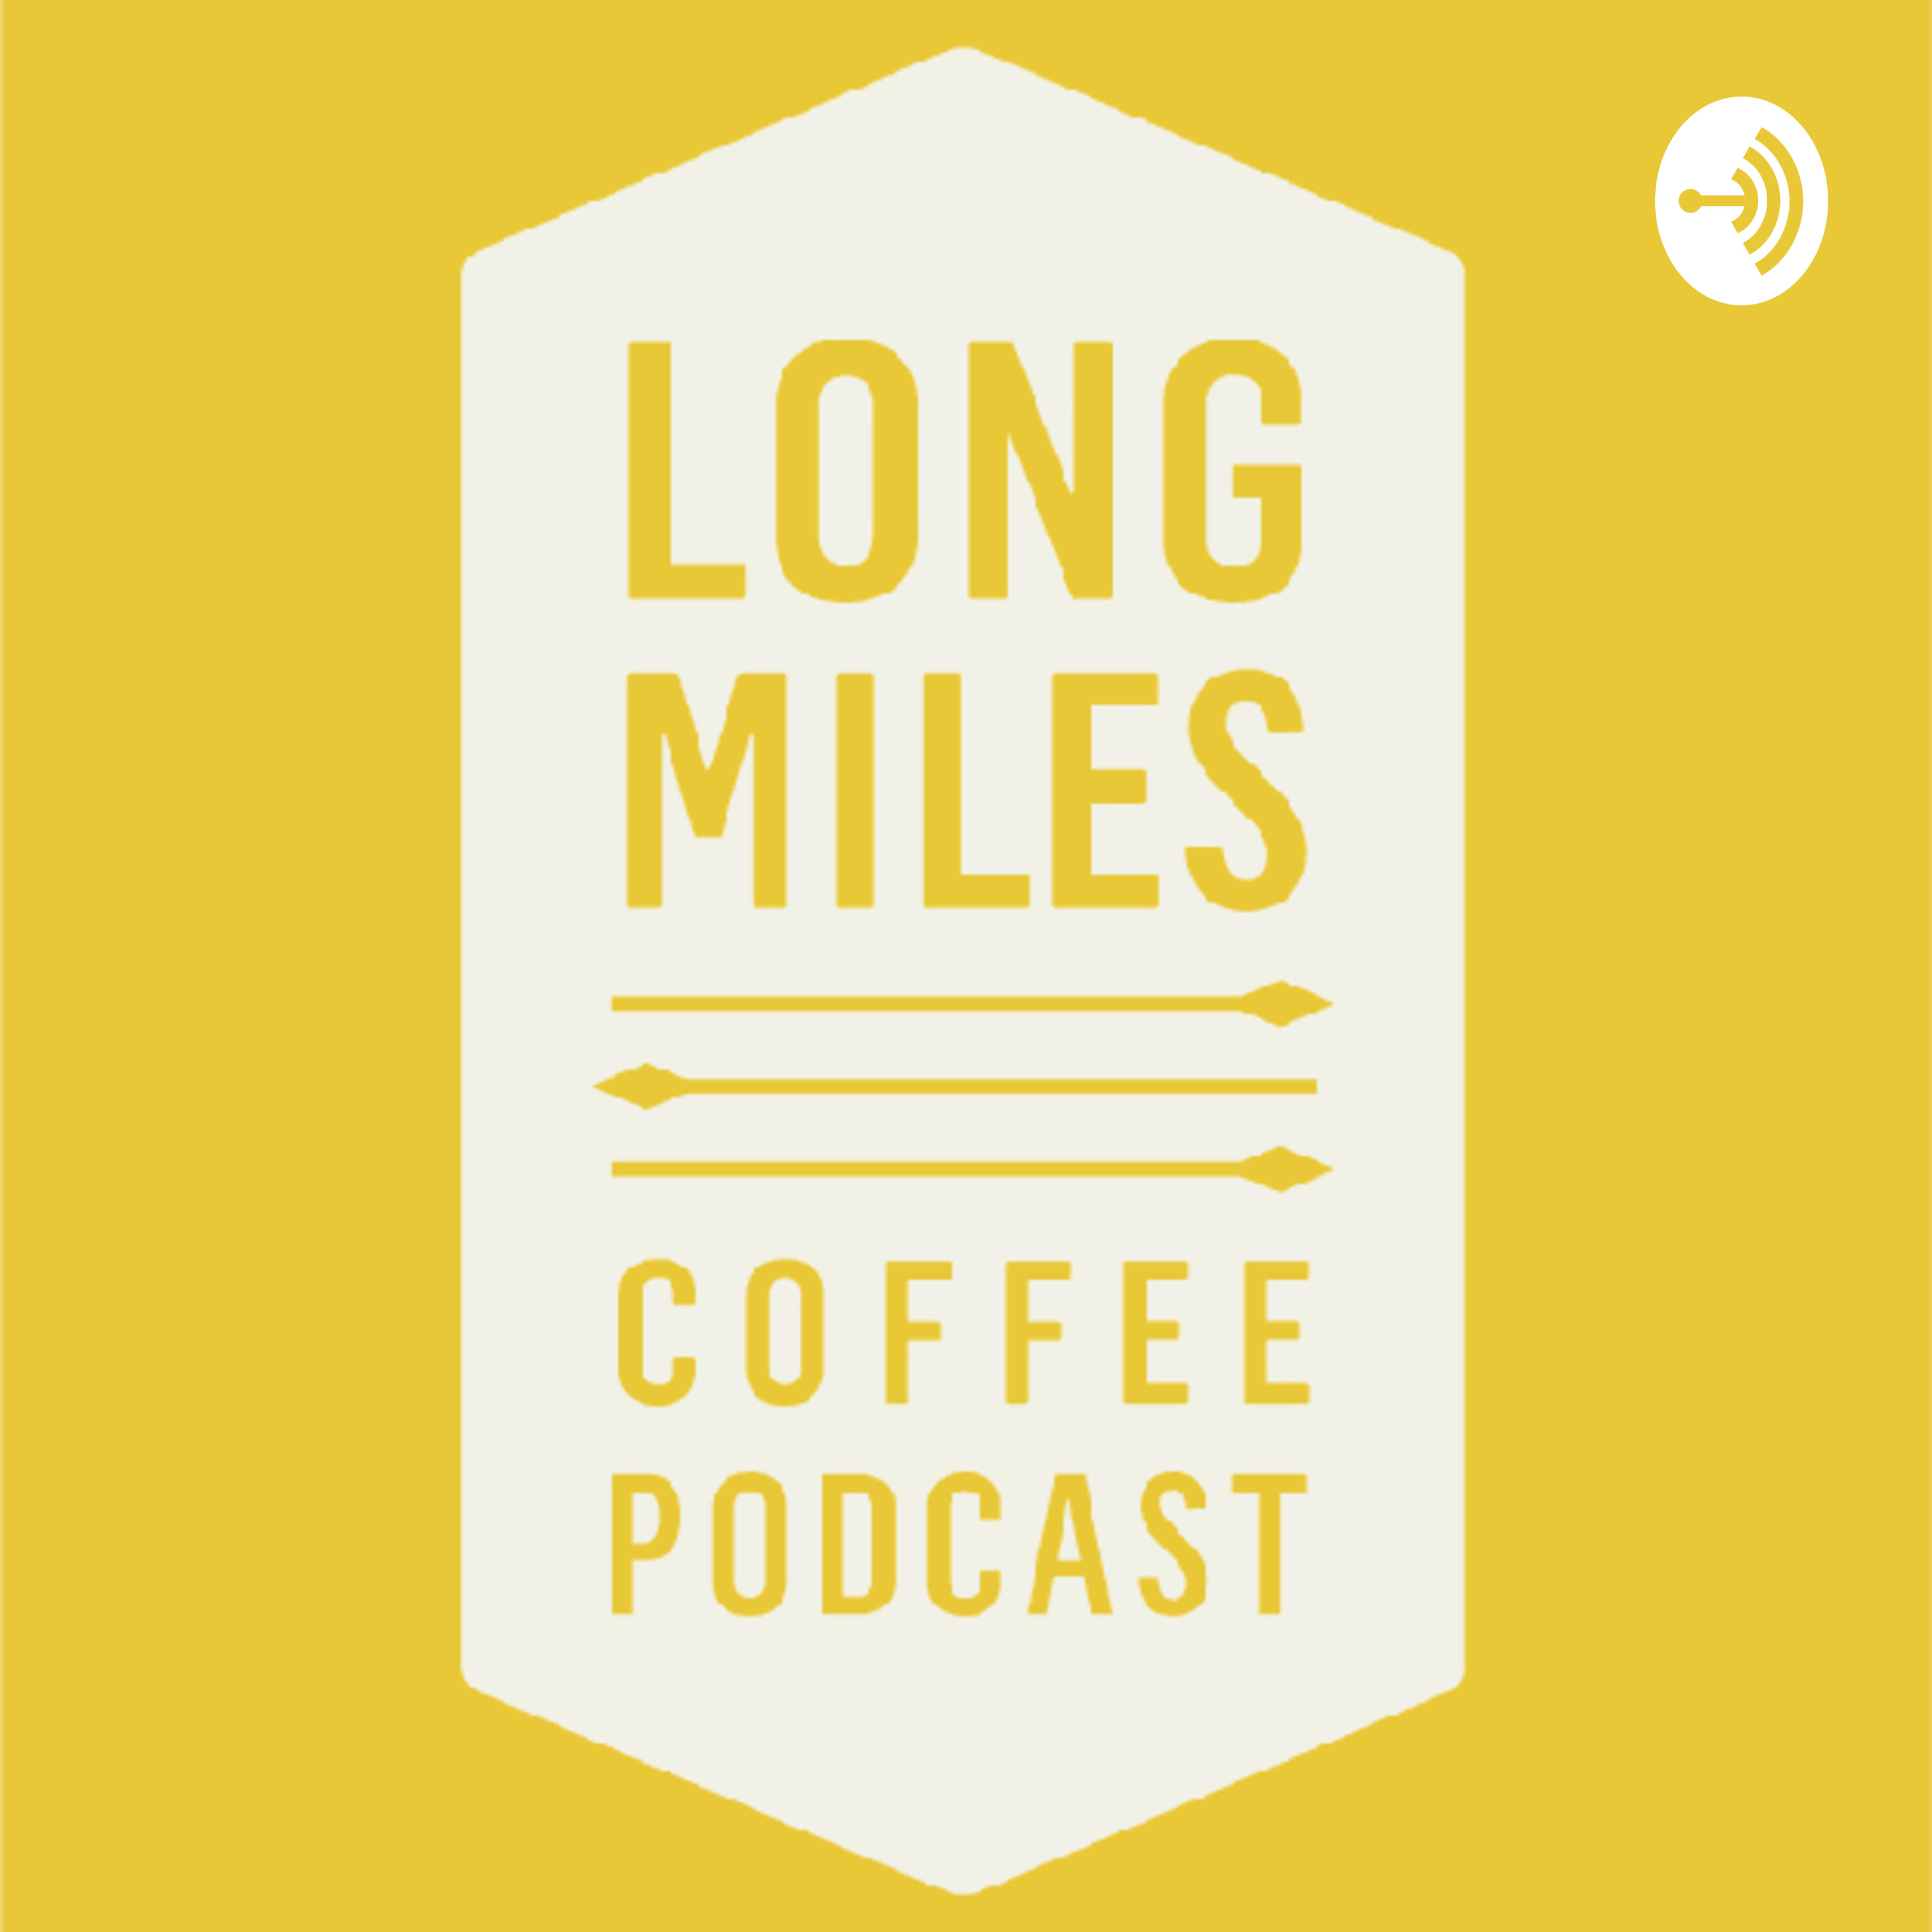 Long Miles Coffee Podcast